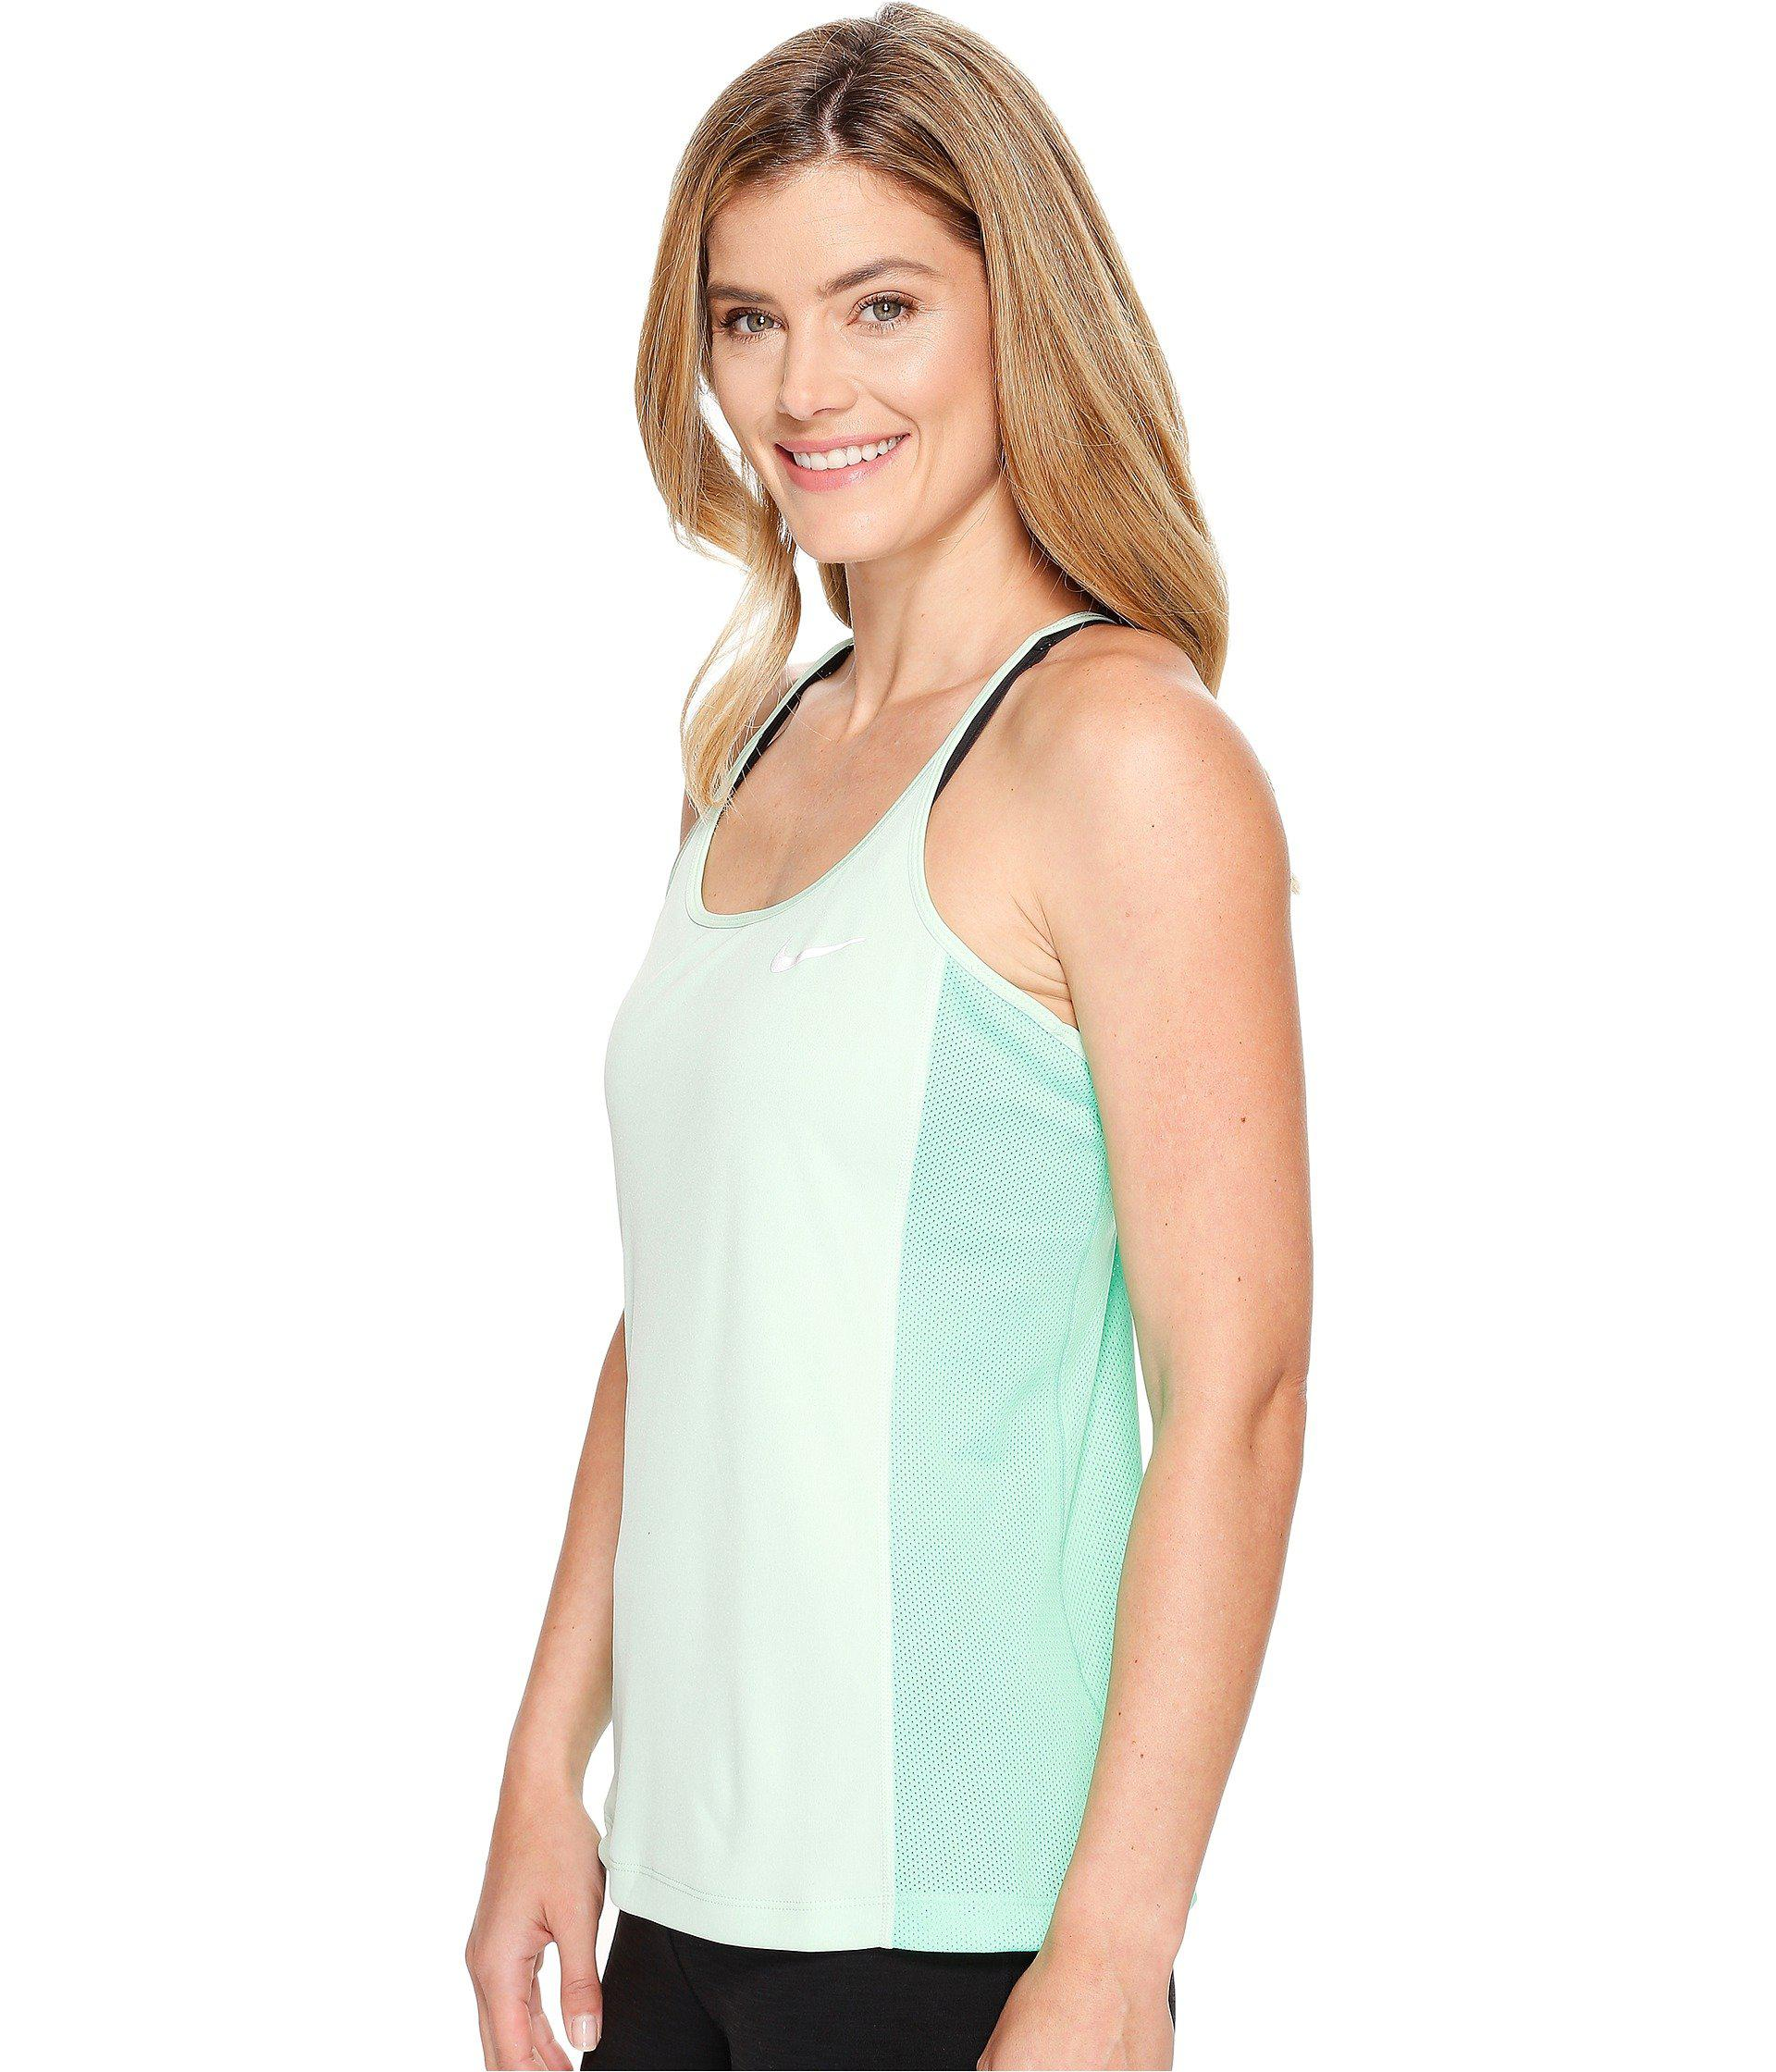 af10bf09d083d Lyst - Nike Dry Miler Running Tank in Green - Save 45%